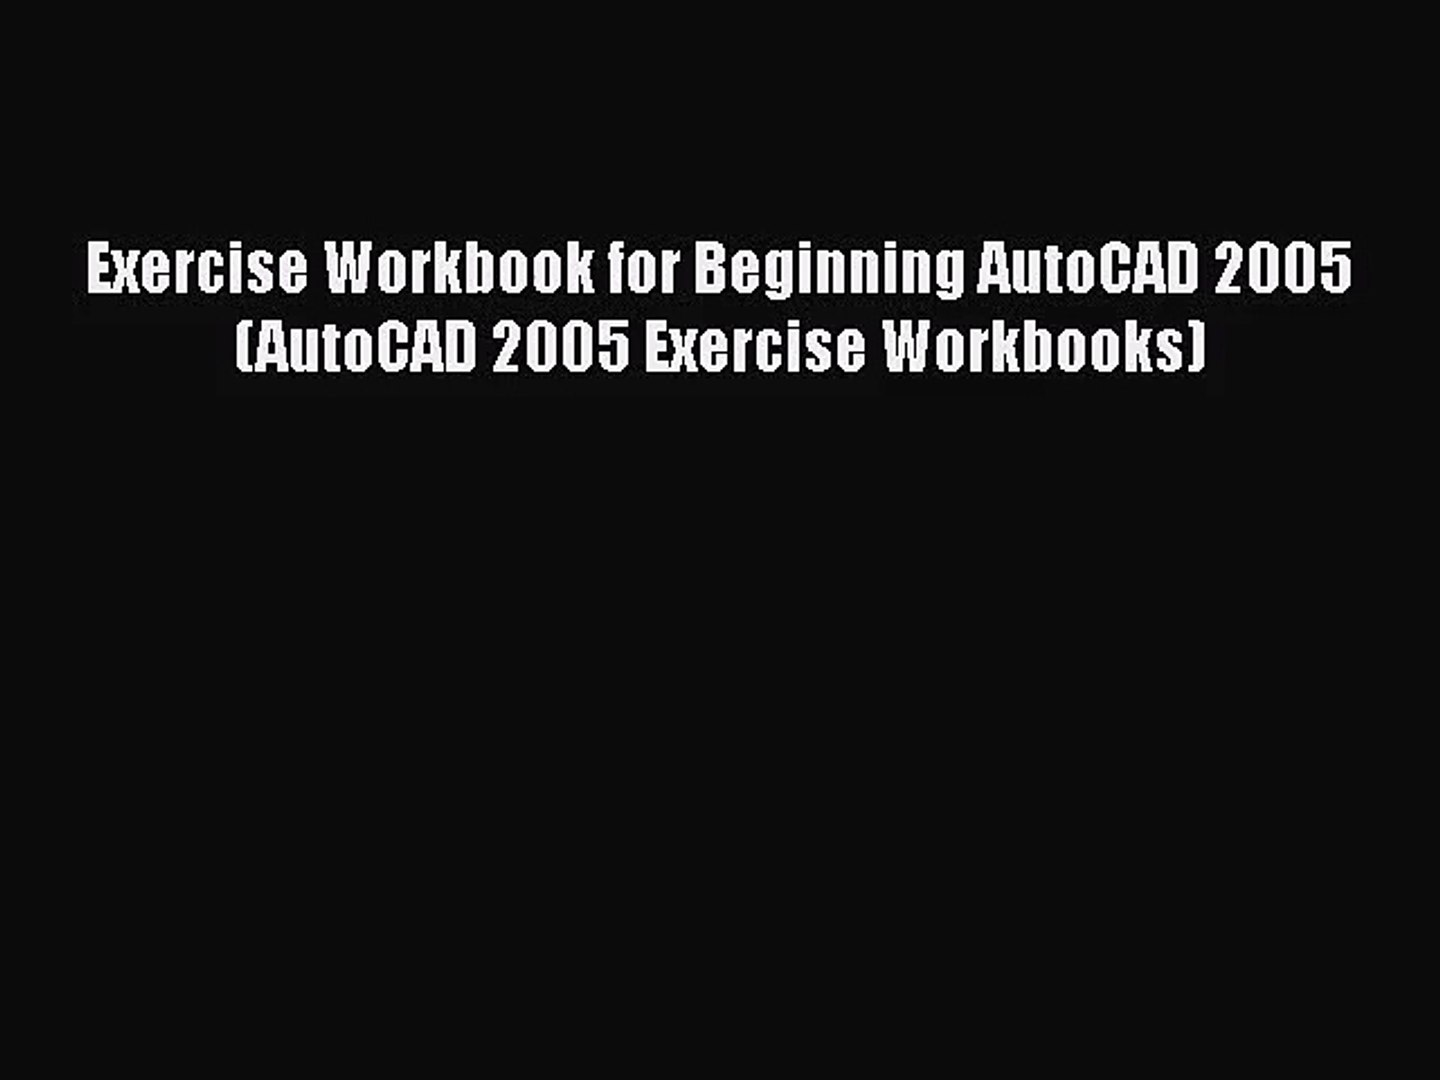 [PDF Download] Exercise Workbook for Beginning AutoCAD 2005 (AutoCAD 2005 Exercise Workbooks)